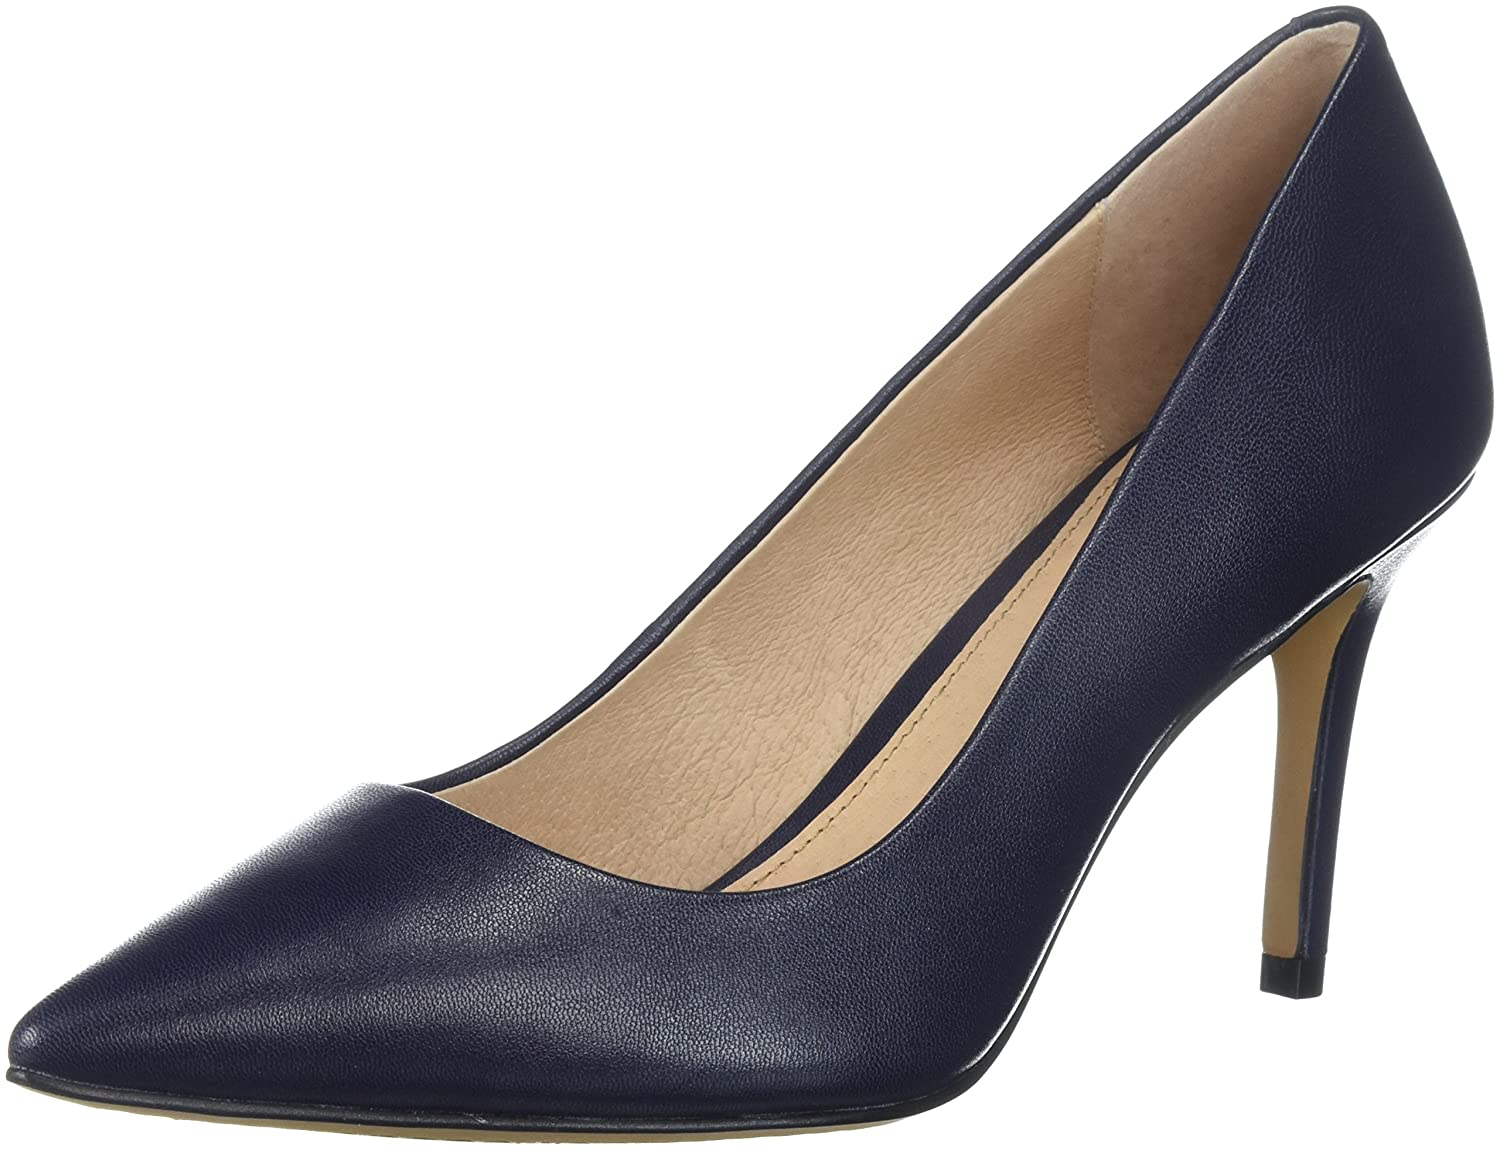 206 Collective Women's Mercer Dress Pump B075TJQX1P 7.5 C/D US|Navy Leather